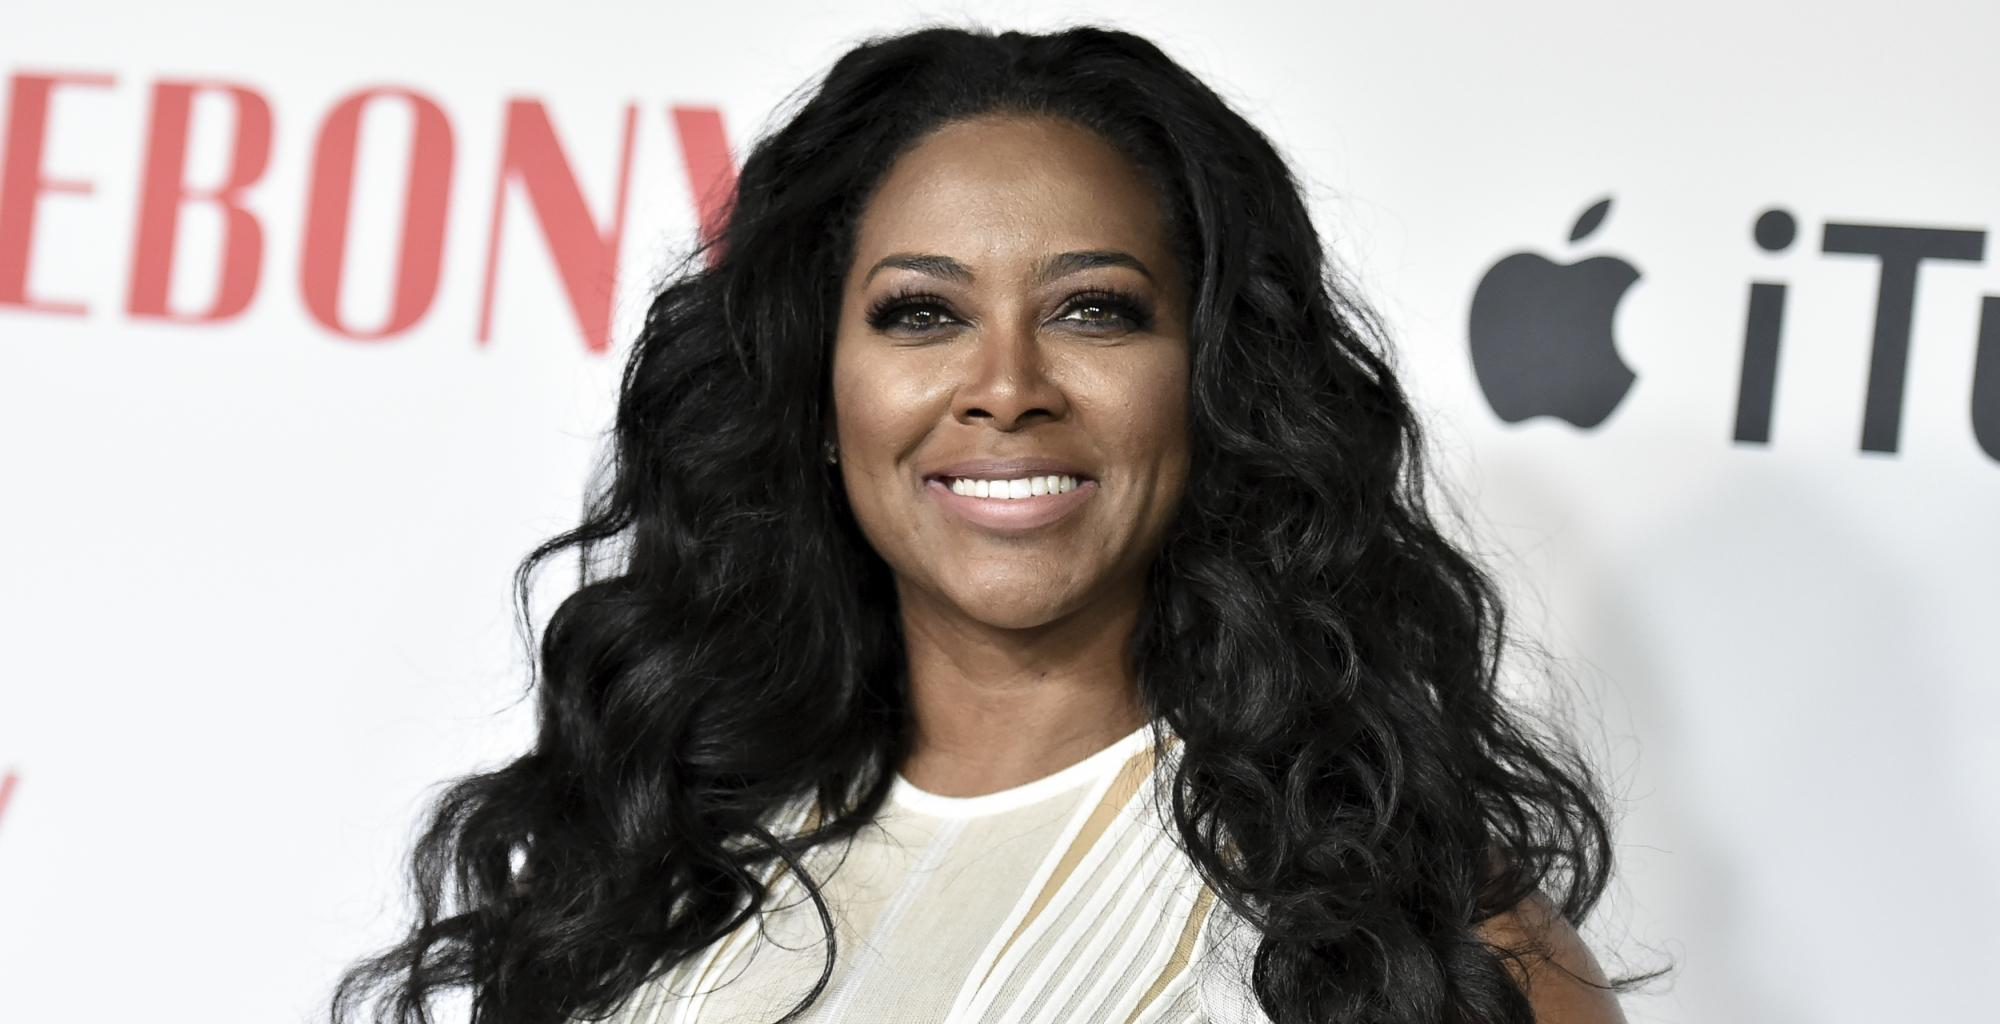 Kenya Moore's Fans Discuss Her Hair Care Products And Supplements